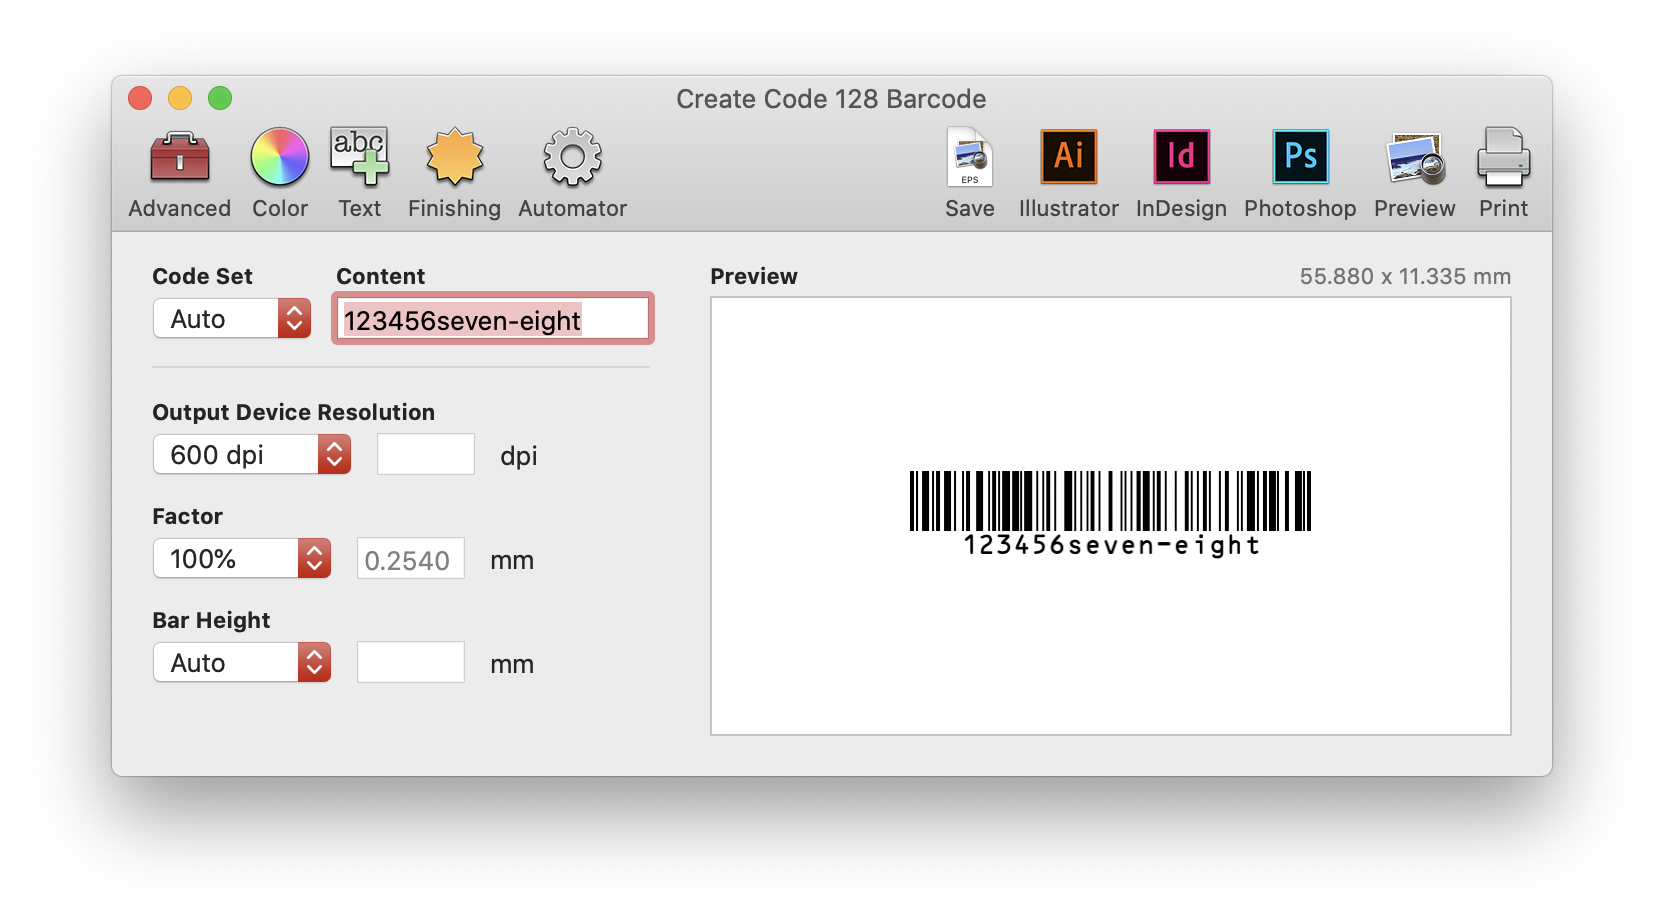 Create Code 128 Barcode screen in Barcode Producer